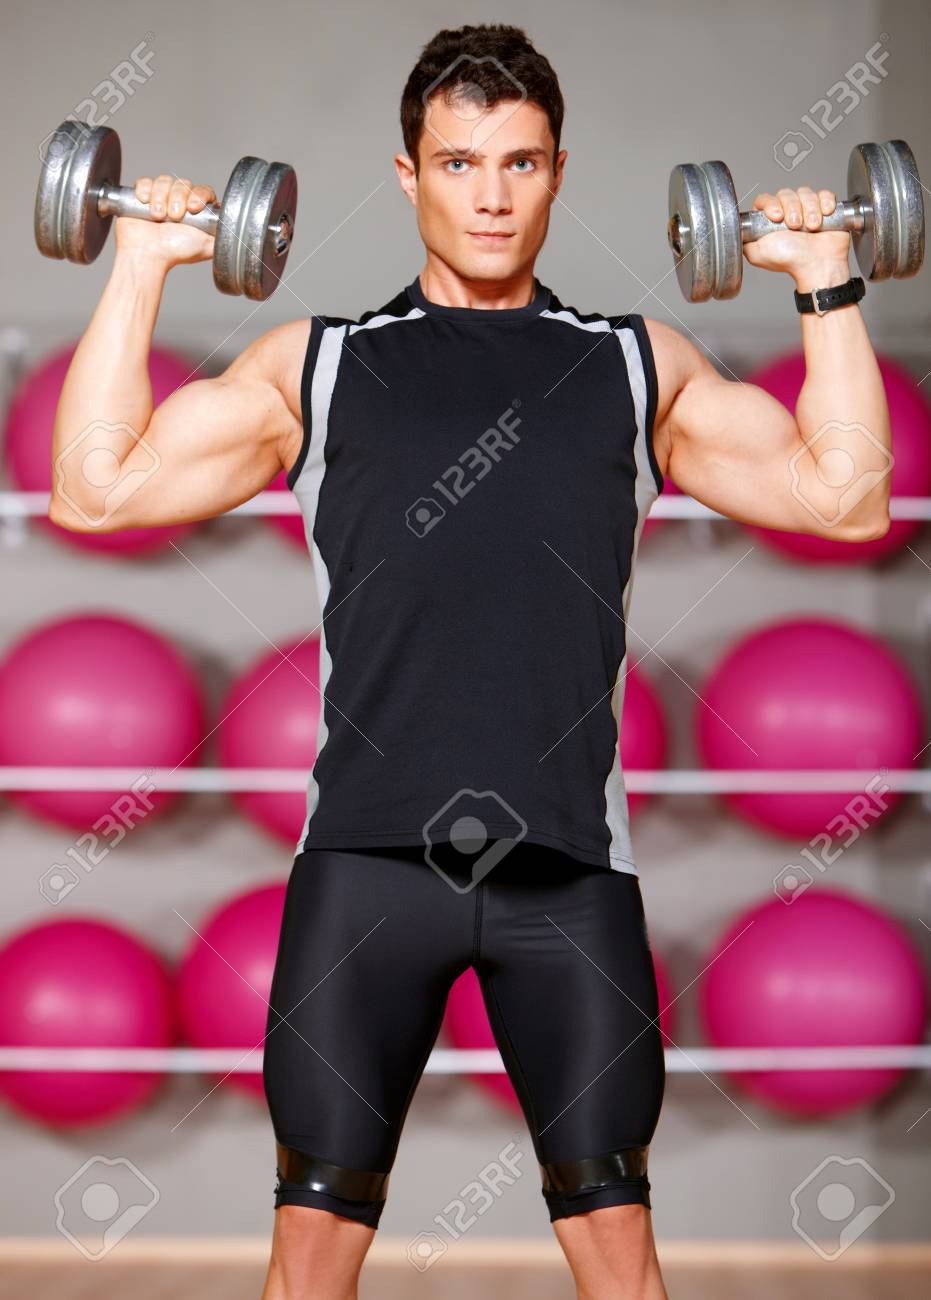 Handsome man at the gym doing exercises Stock Photo - 9795985